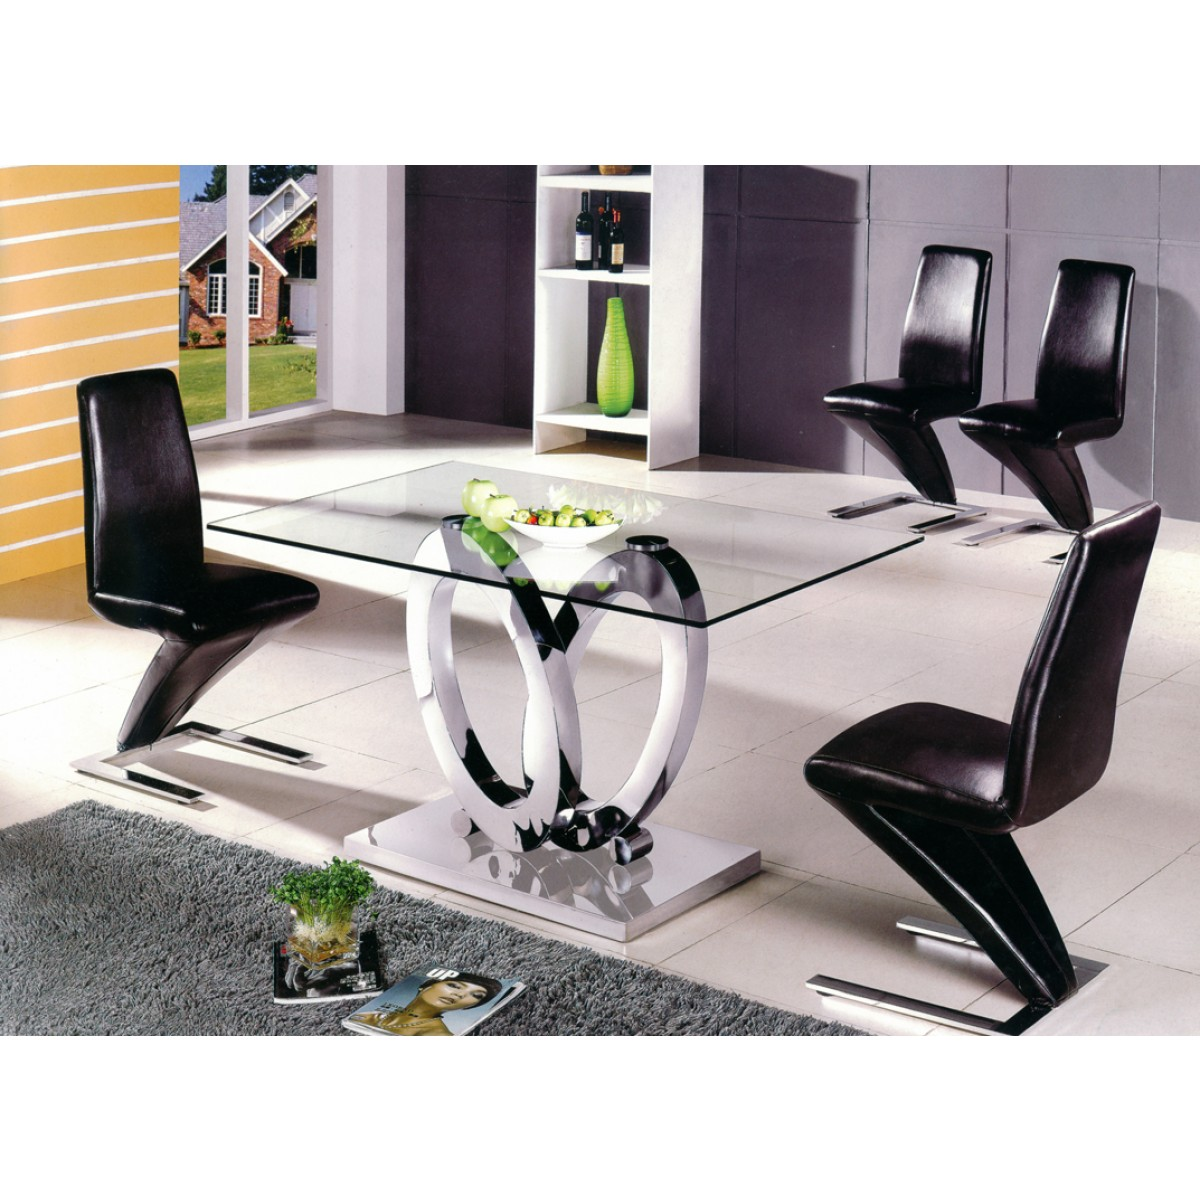 Table manger design ellipse taille au choix tables for Table salle a manger design